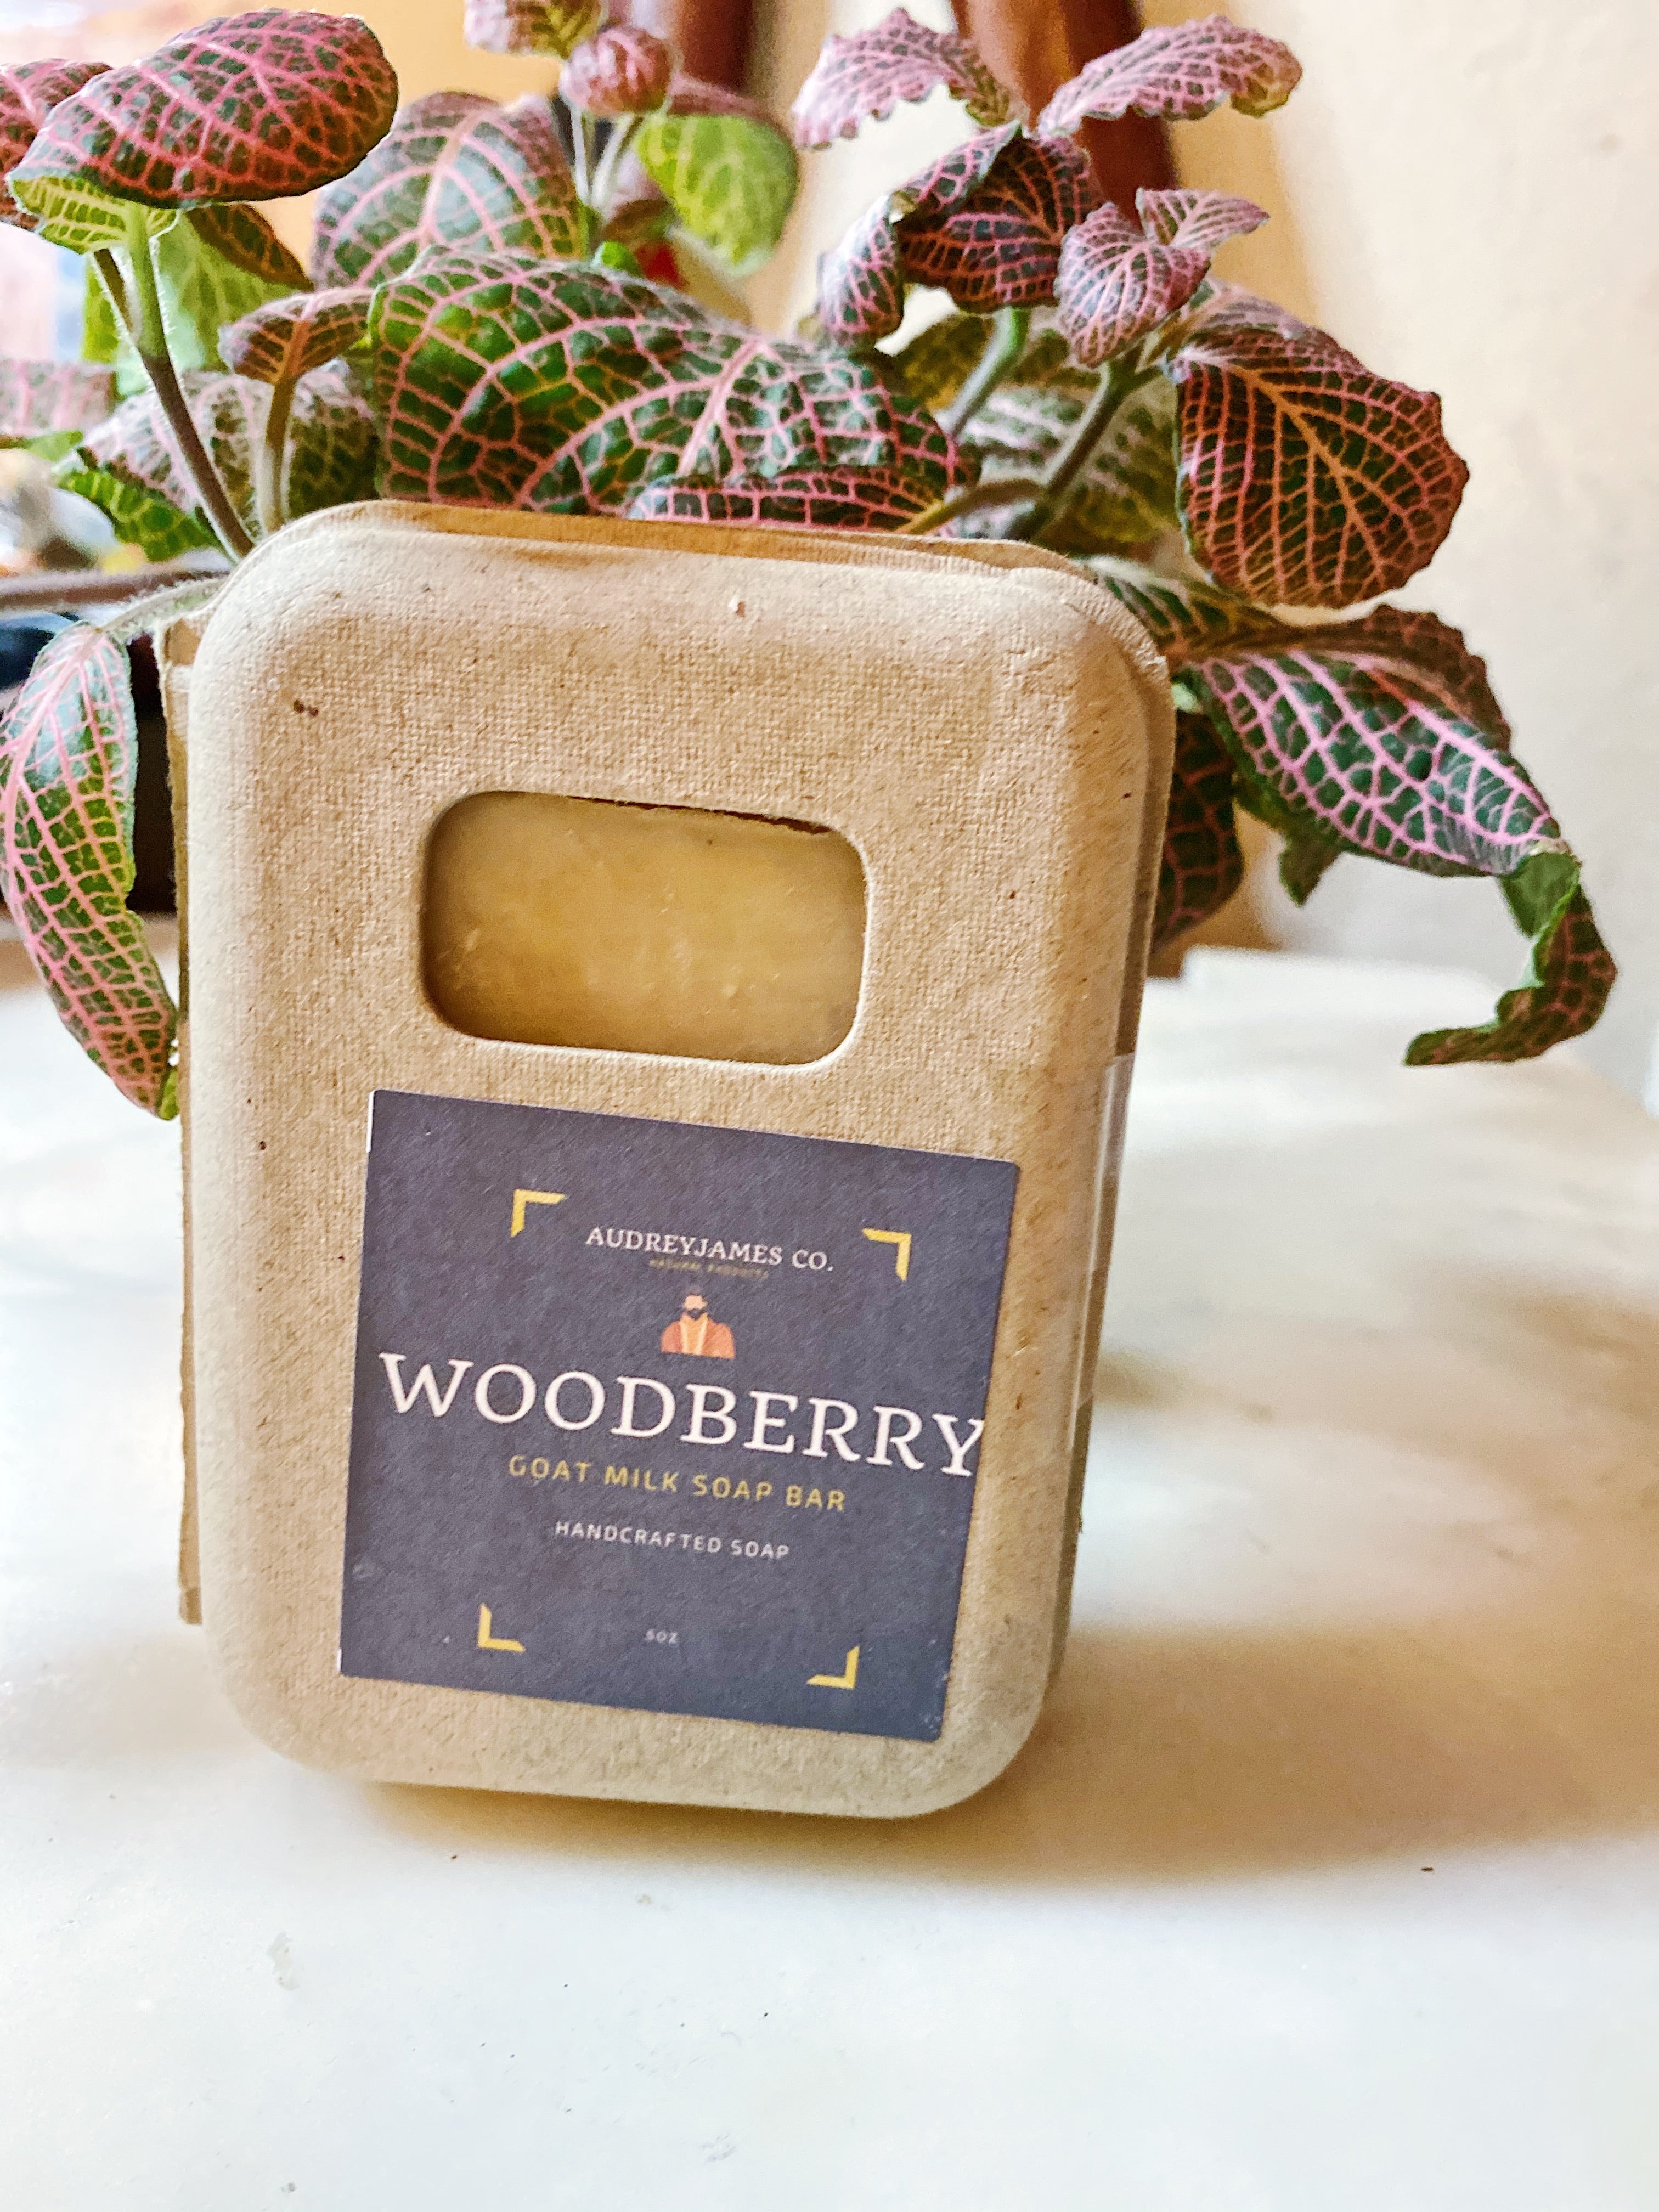 Woodberry Goat Milk Soap